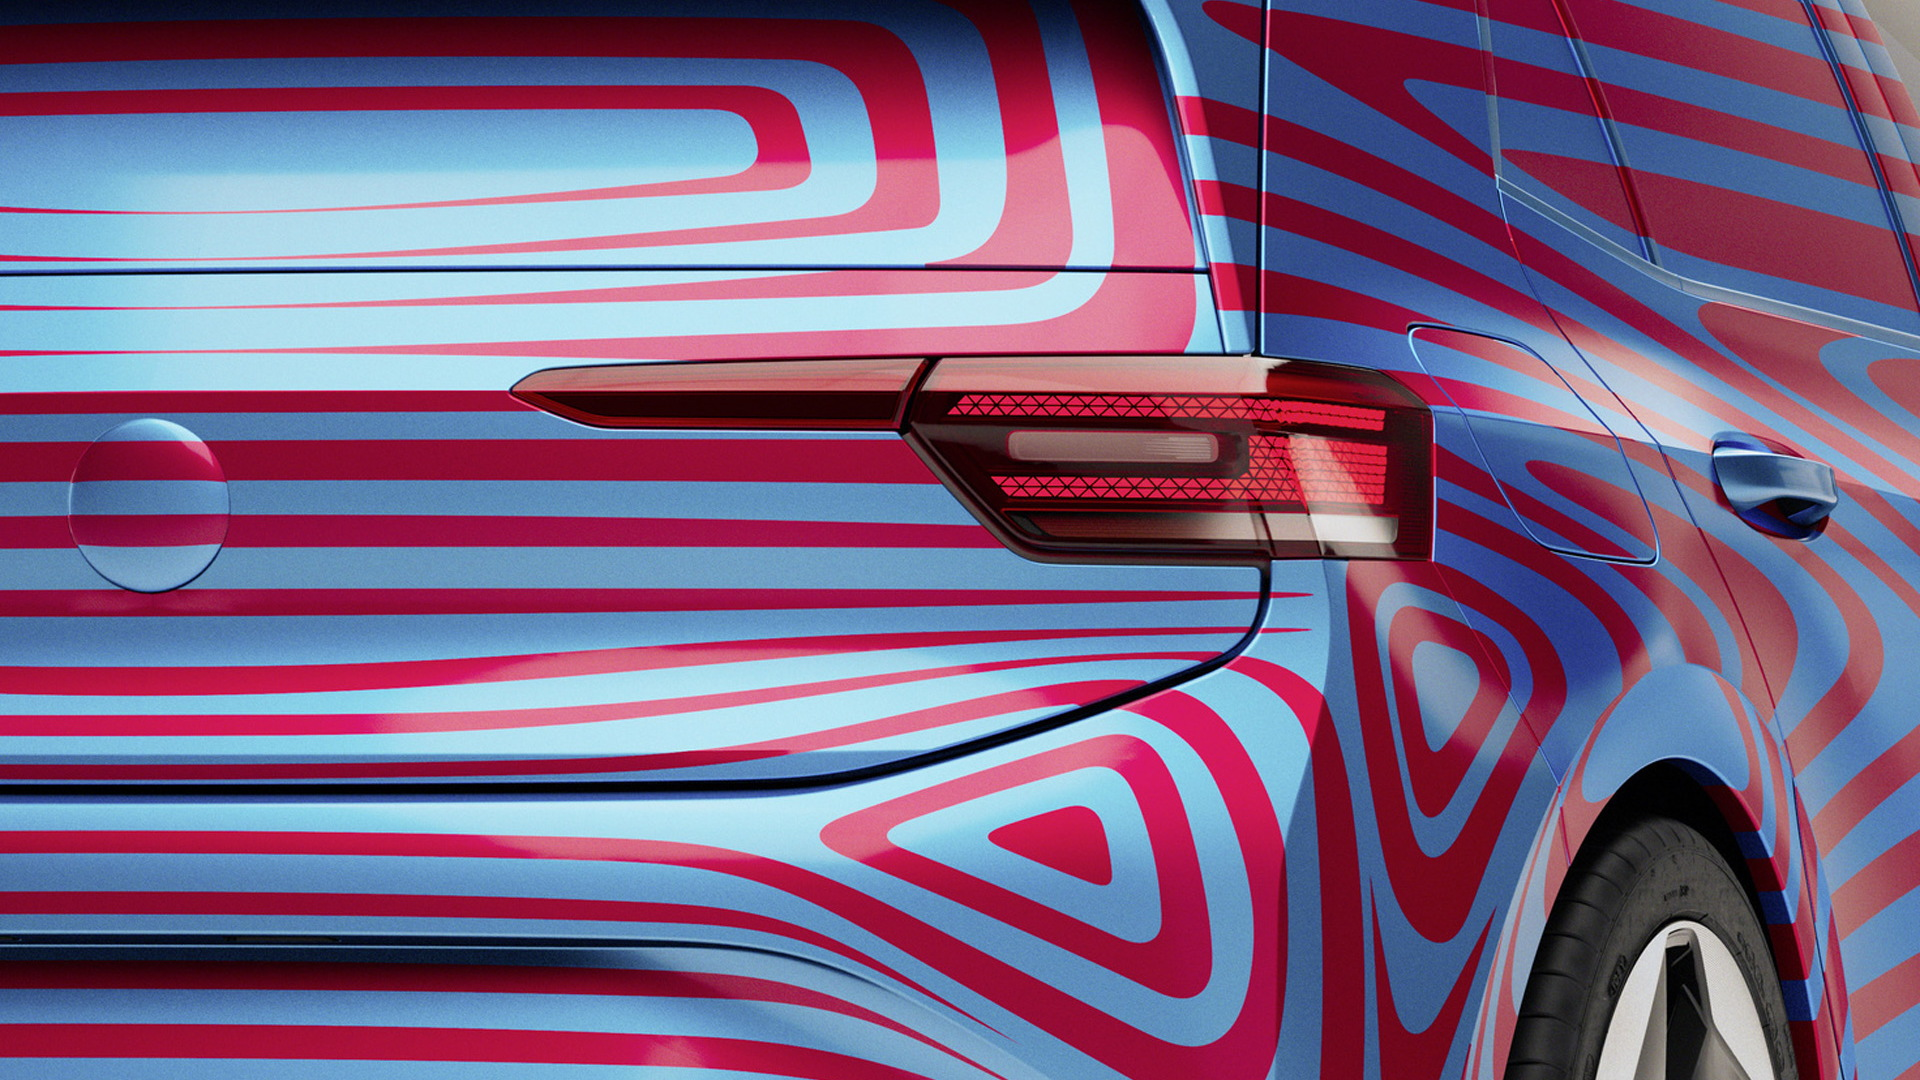 Teaser for 2020 Volkswagen ID 3 debuting at 2019 Frankfurt auto show